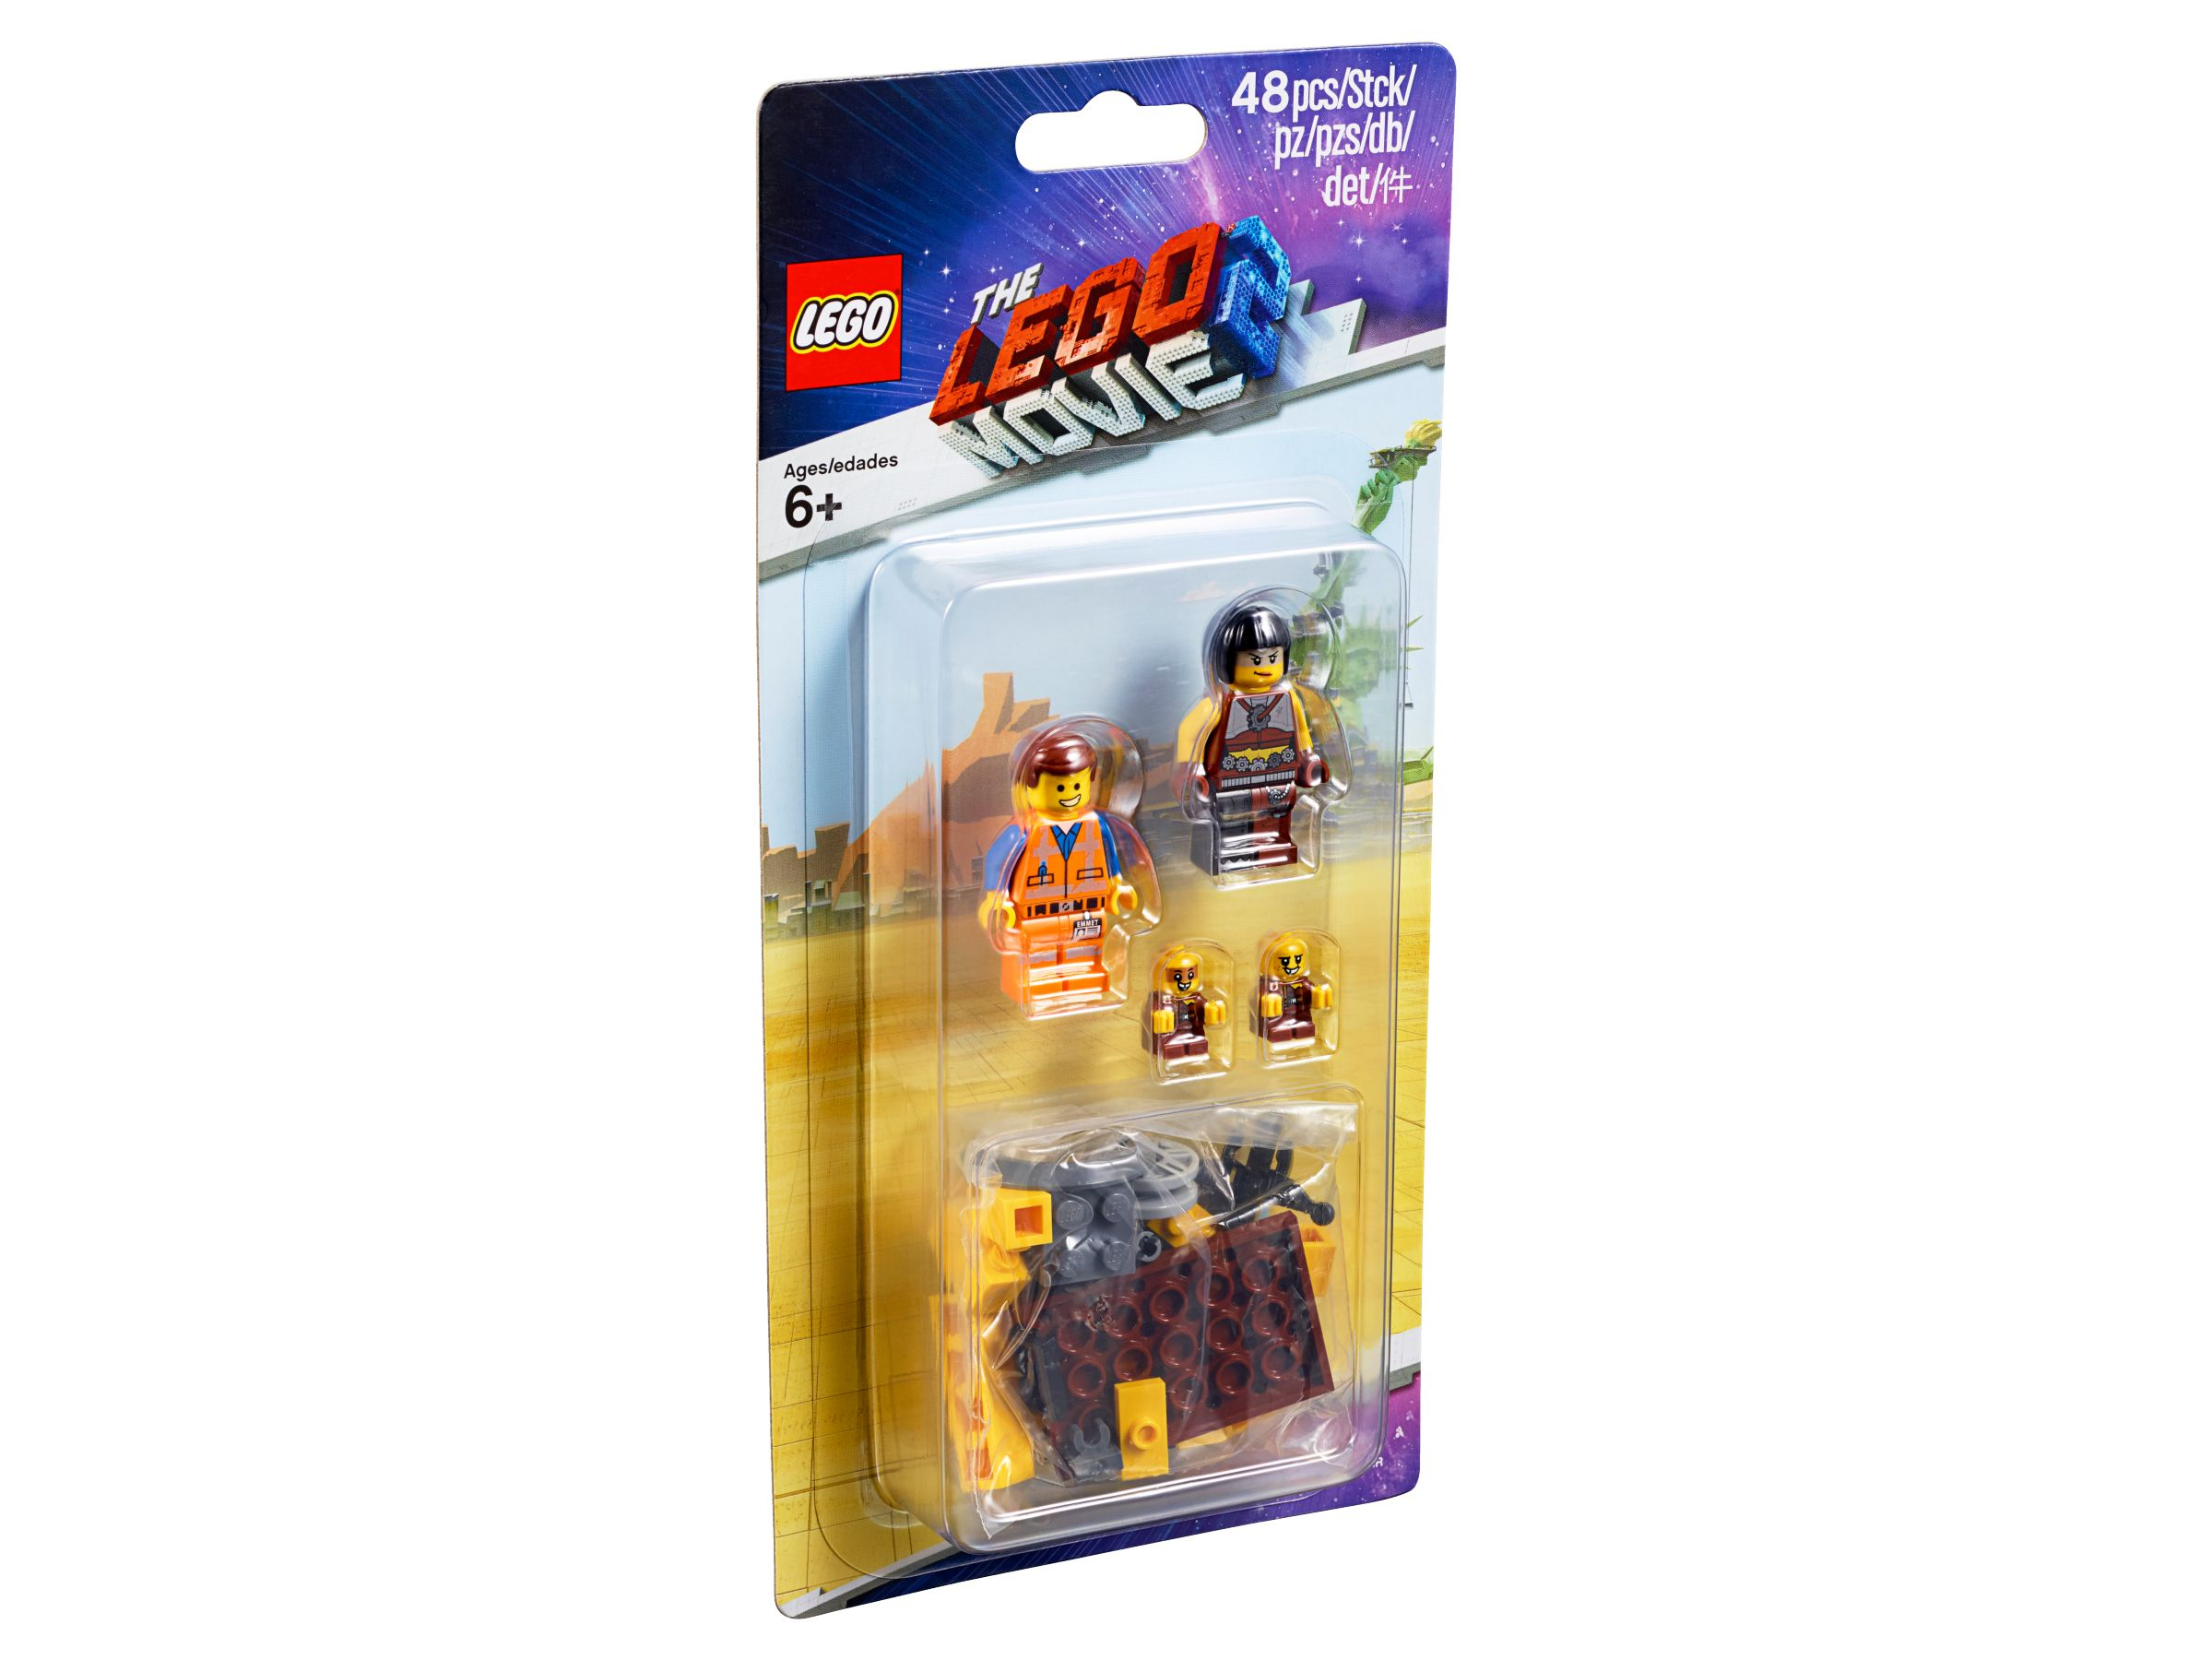 LEGO The Lego Movie 2 853865 Zubehörset - Kanalbabies LEGO_853865_alt1.jpg